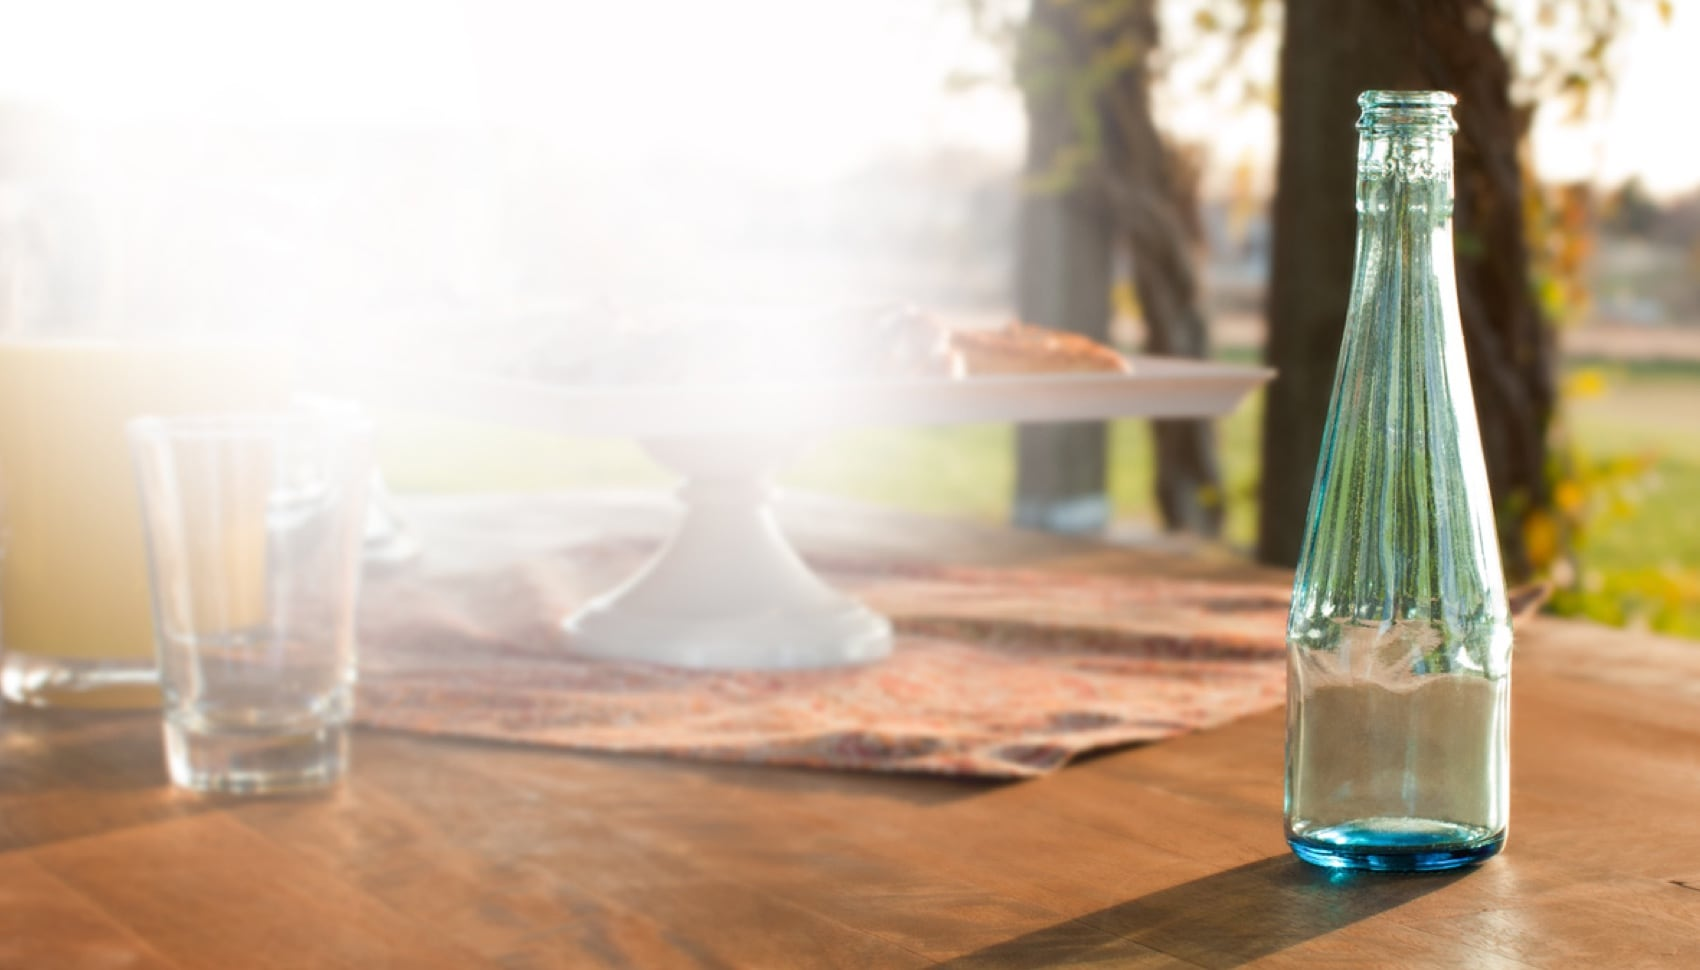 A clear glass bottle sits on a wooden patio table on a sunny day